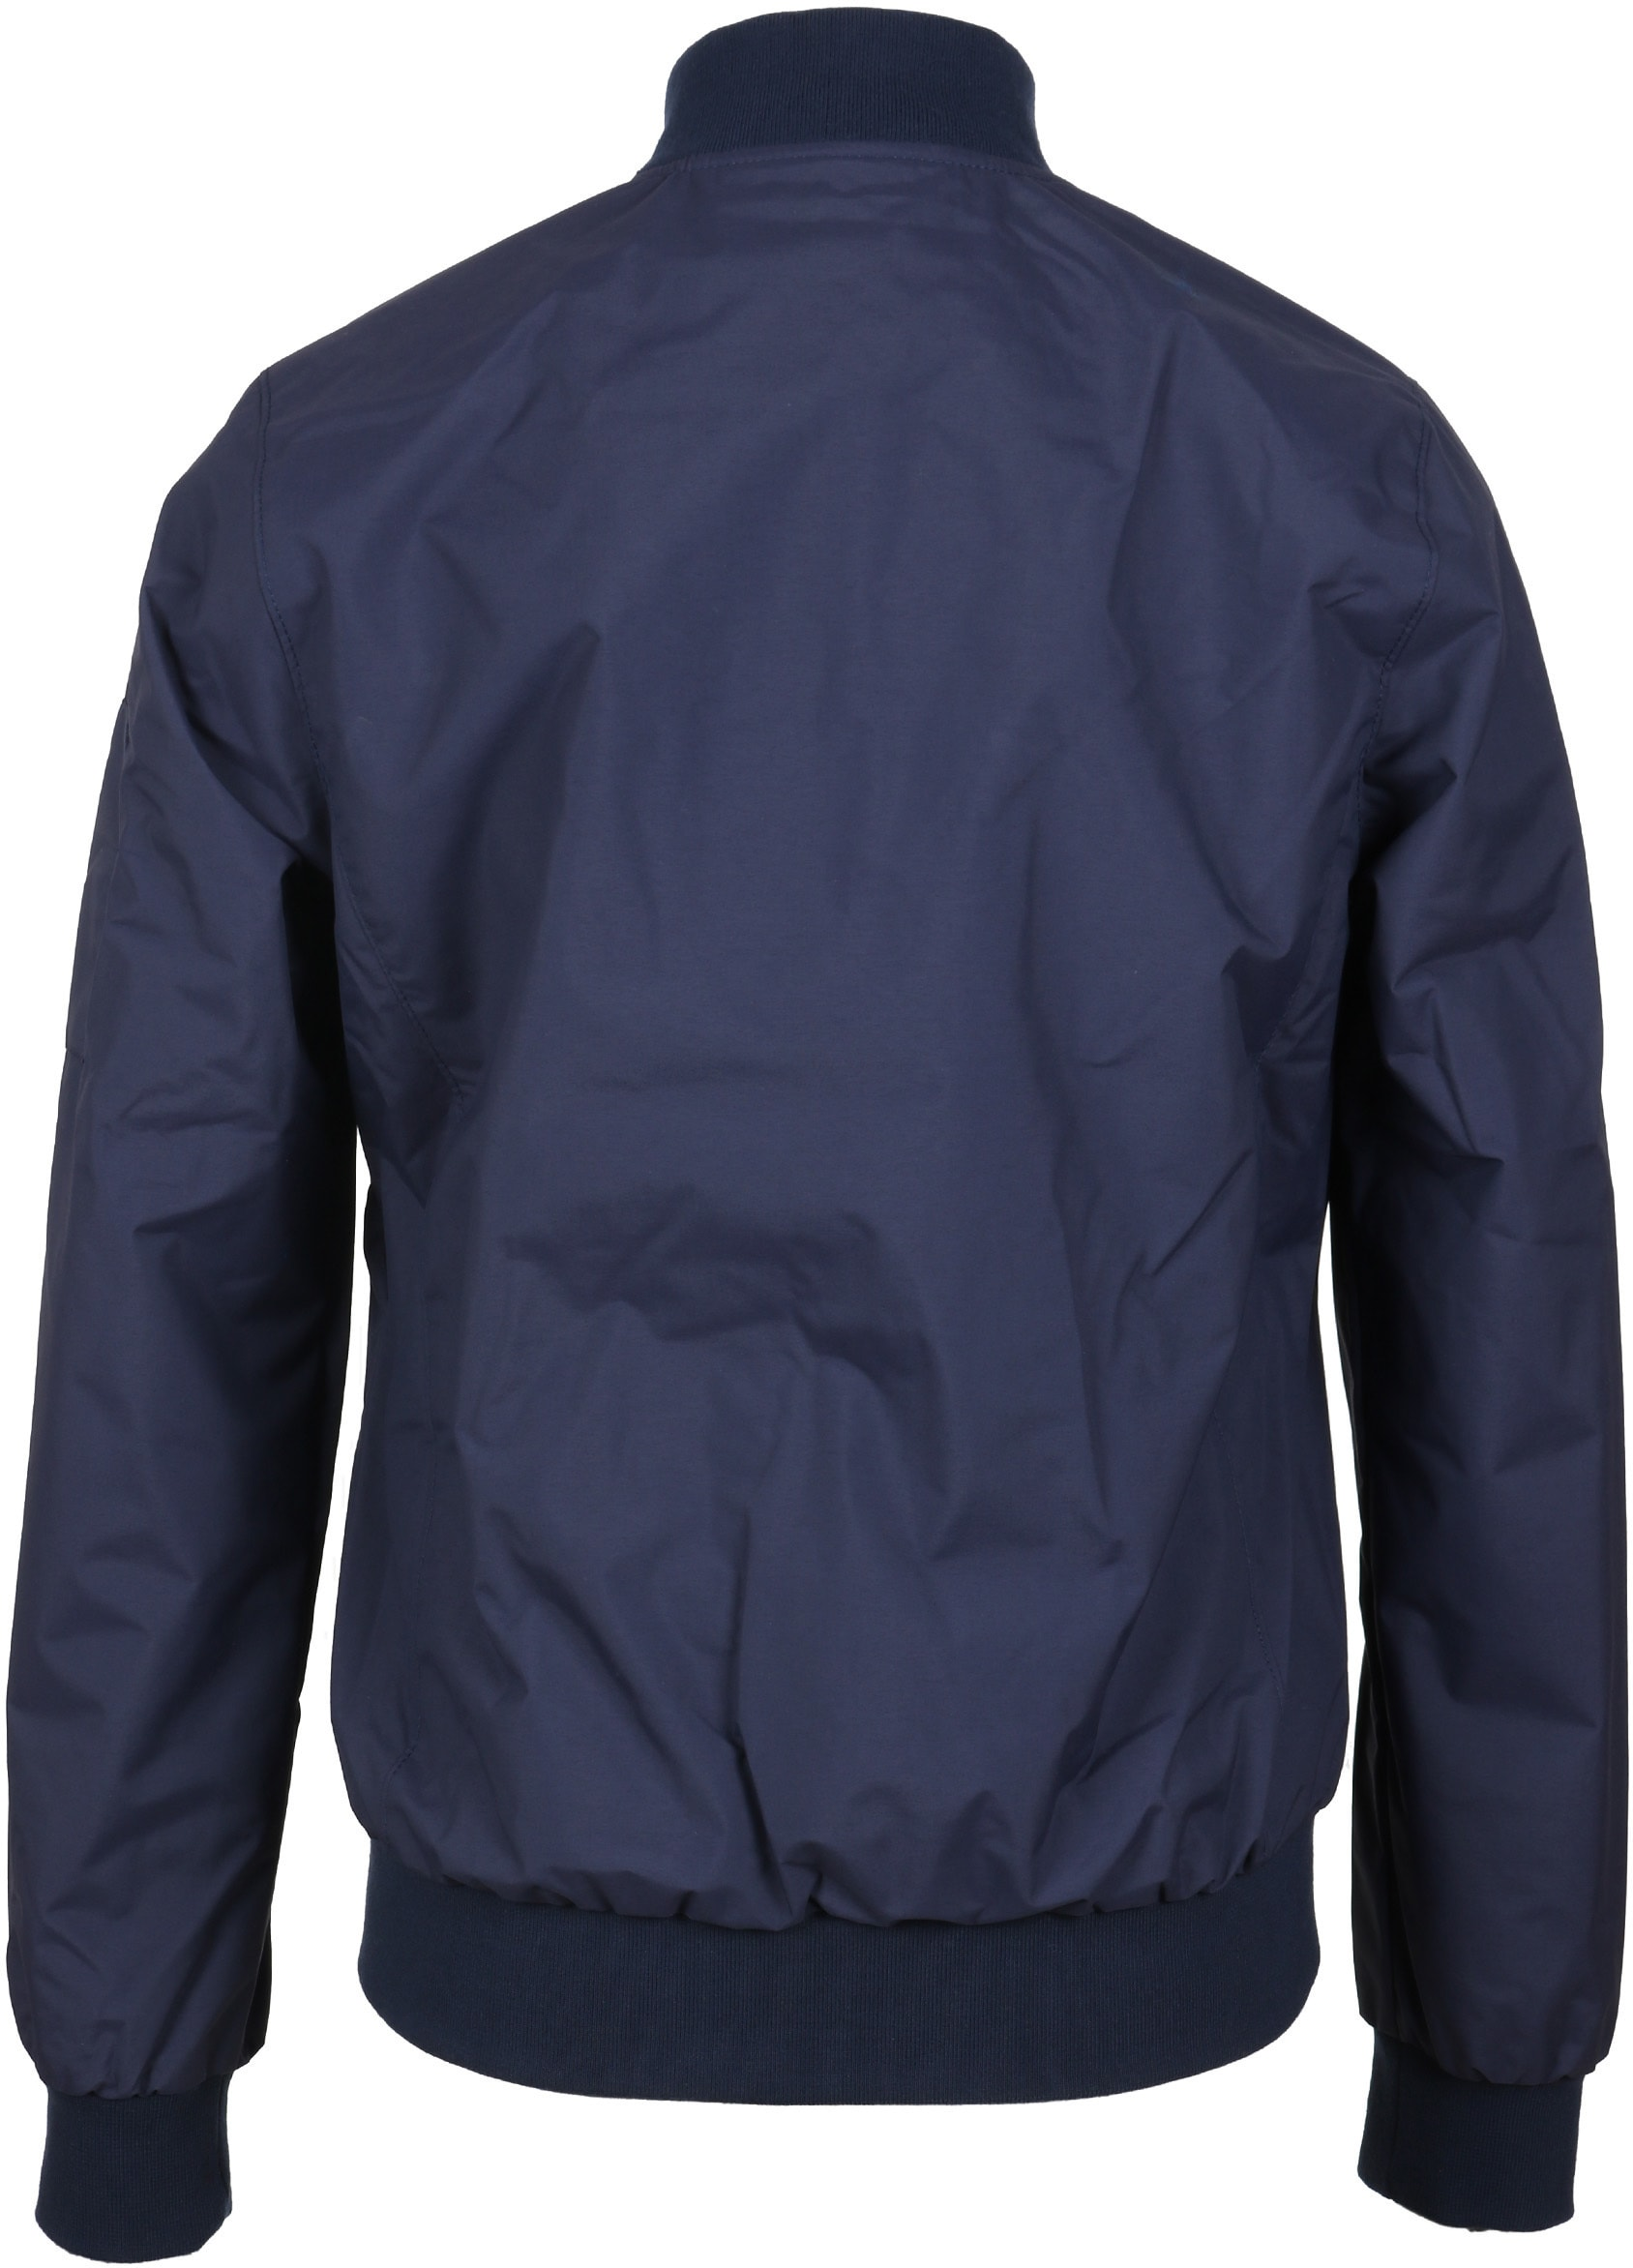 Suitable Bomber Chapron Navy foto 4